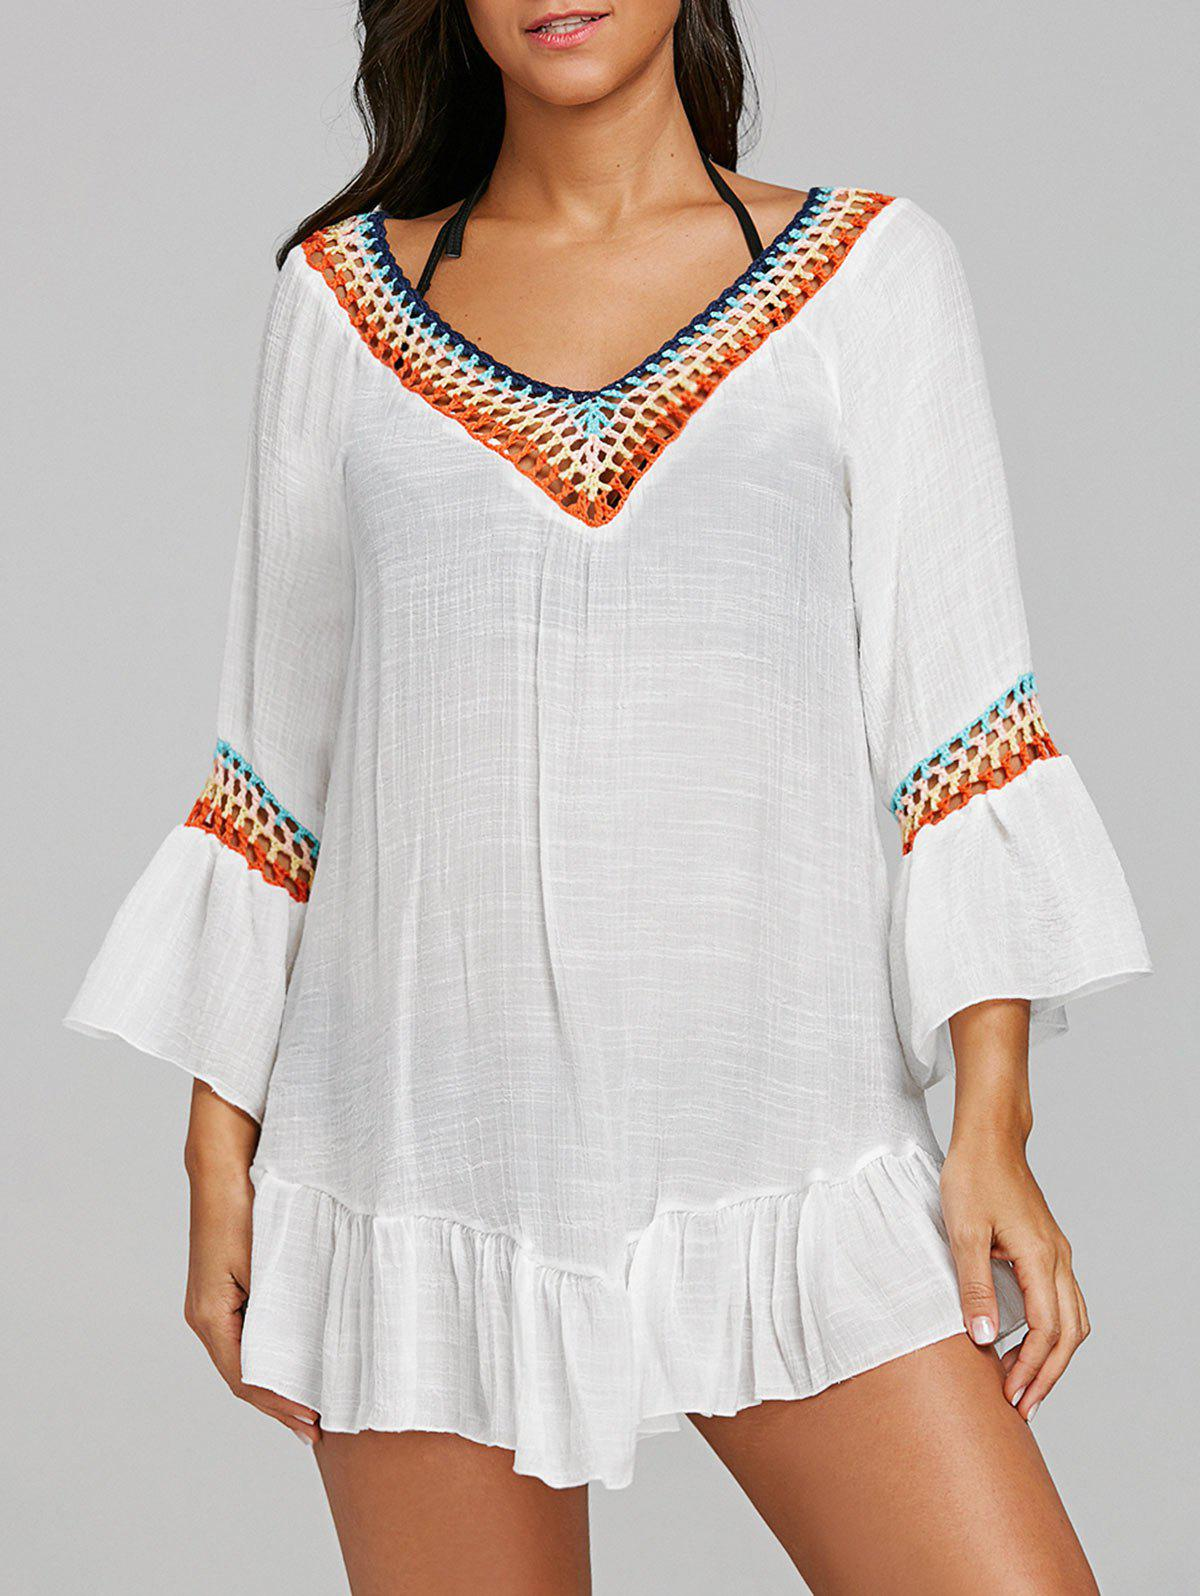 Colored Crochet Ruffled Beach Cover Up Tunic - WHITE ONE SIZE